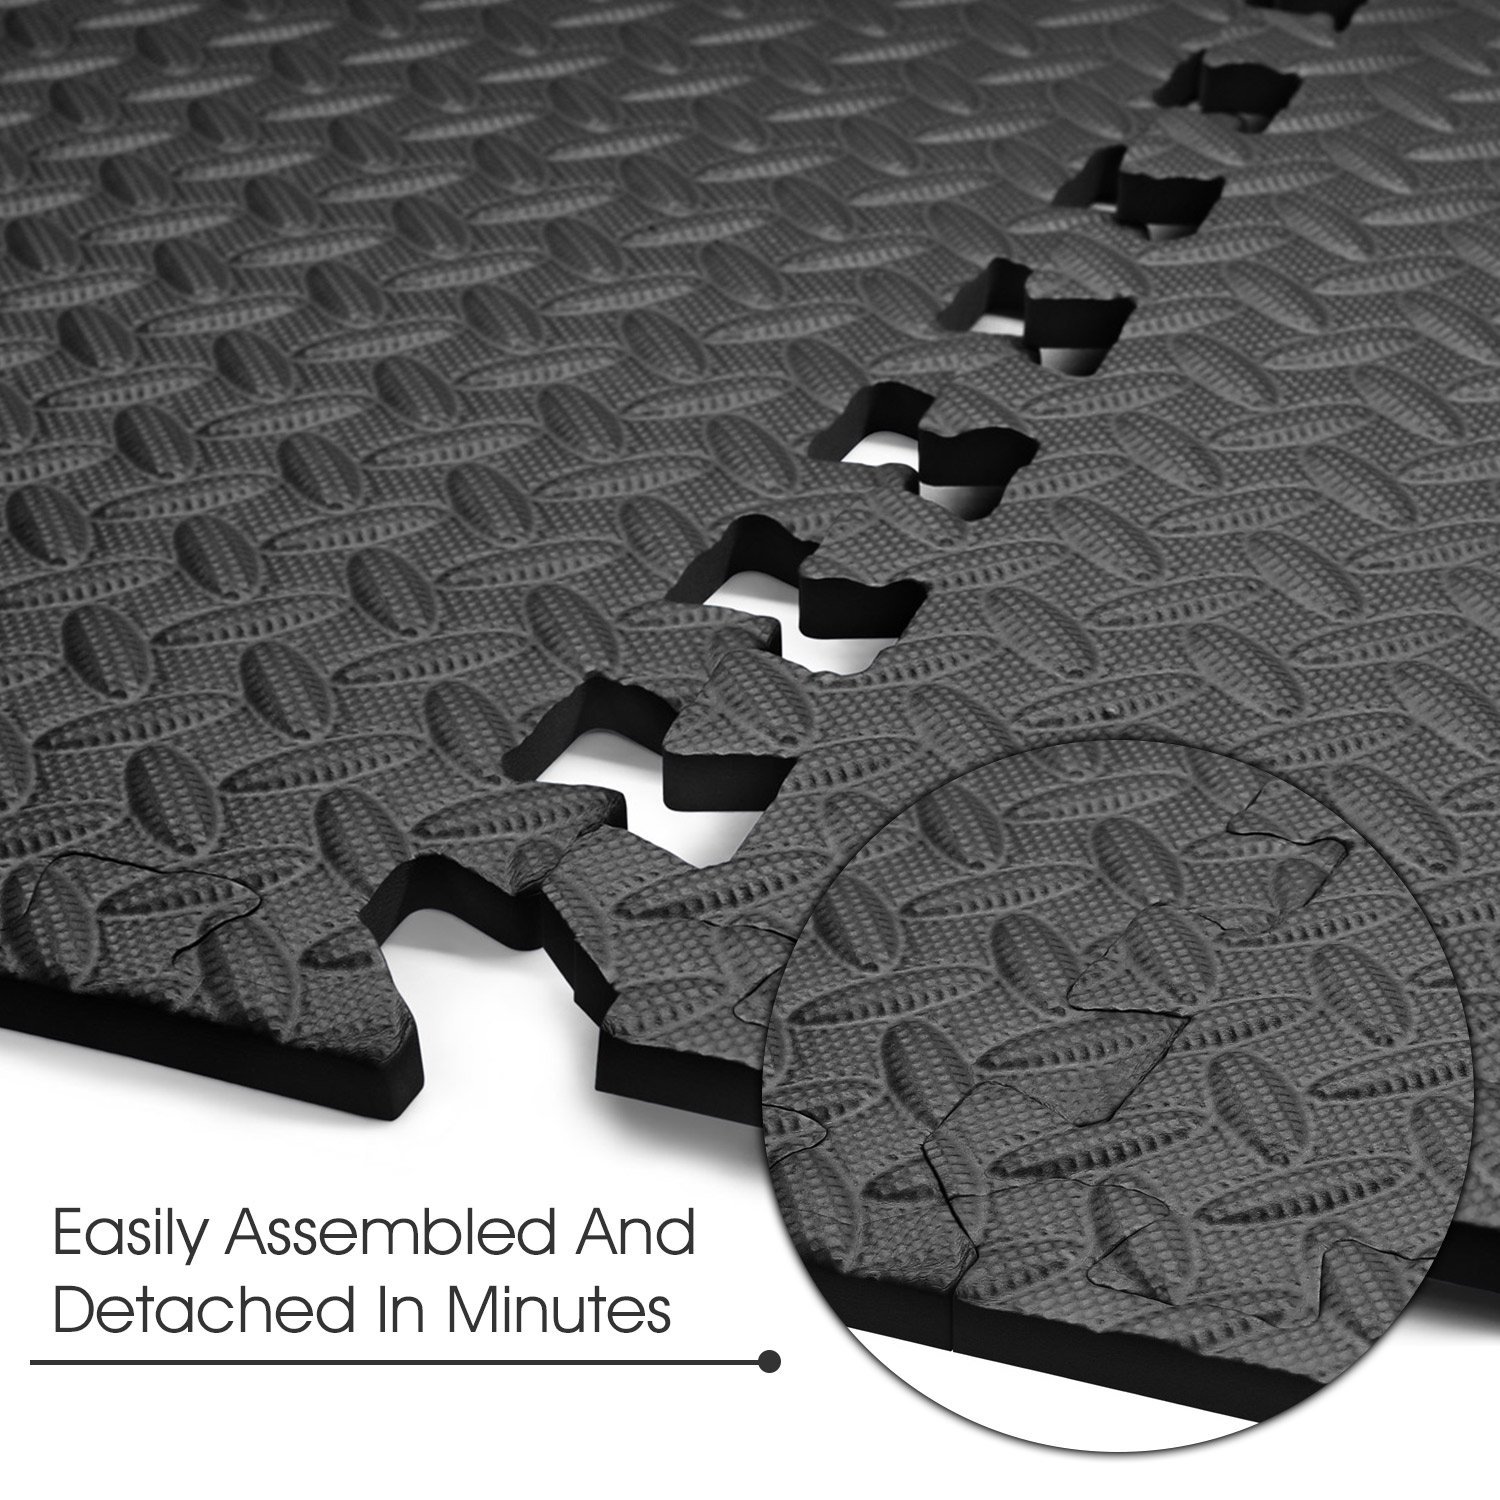 Yes4All Interlocking Exercise Foam Mats with Border – Interlocking Floor Mats for Gym Equipment – Eva Interlocking Floor Tiles (12 Square Feet, Black) by Yes4All (Image #6)